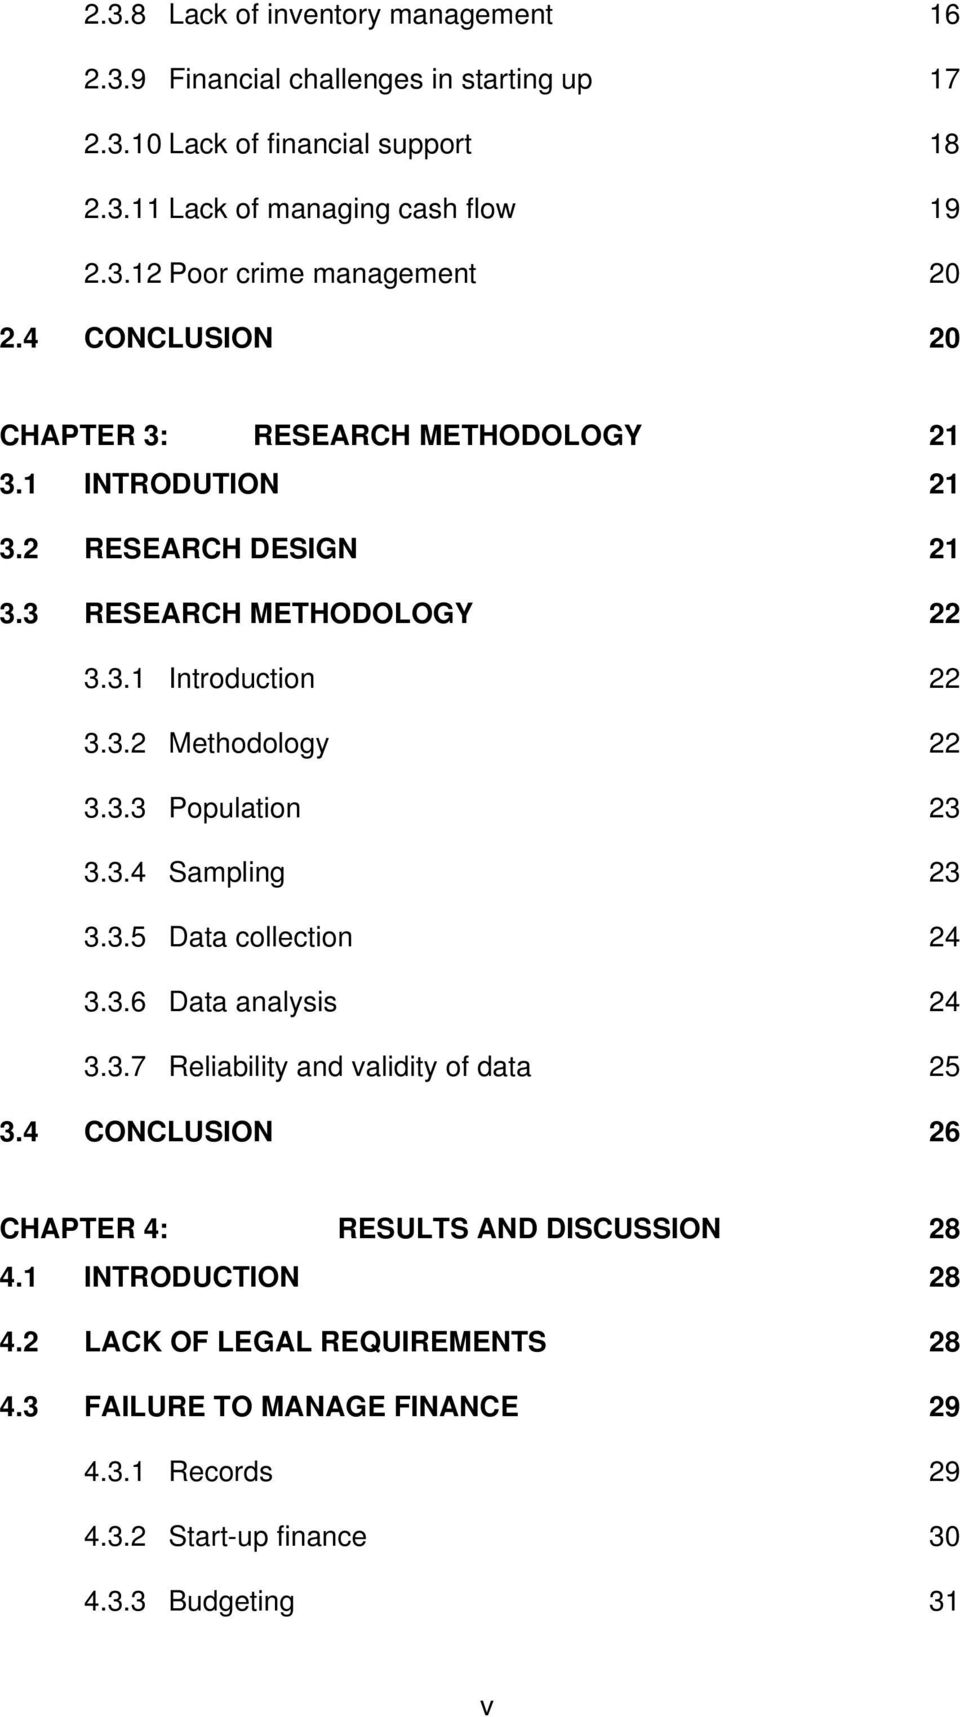 3.4 Sampling 23 3.3.5 Data collection 24 3.3.6 Data analysis 24 3.3.7 Reliability and validity of data 25 3.4 CONCLUSION 26 CHAPTER 4: RESULTS AND DISCUSSION 28 4.